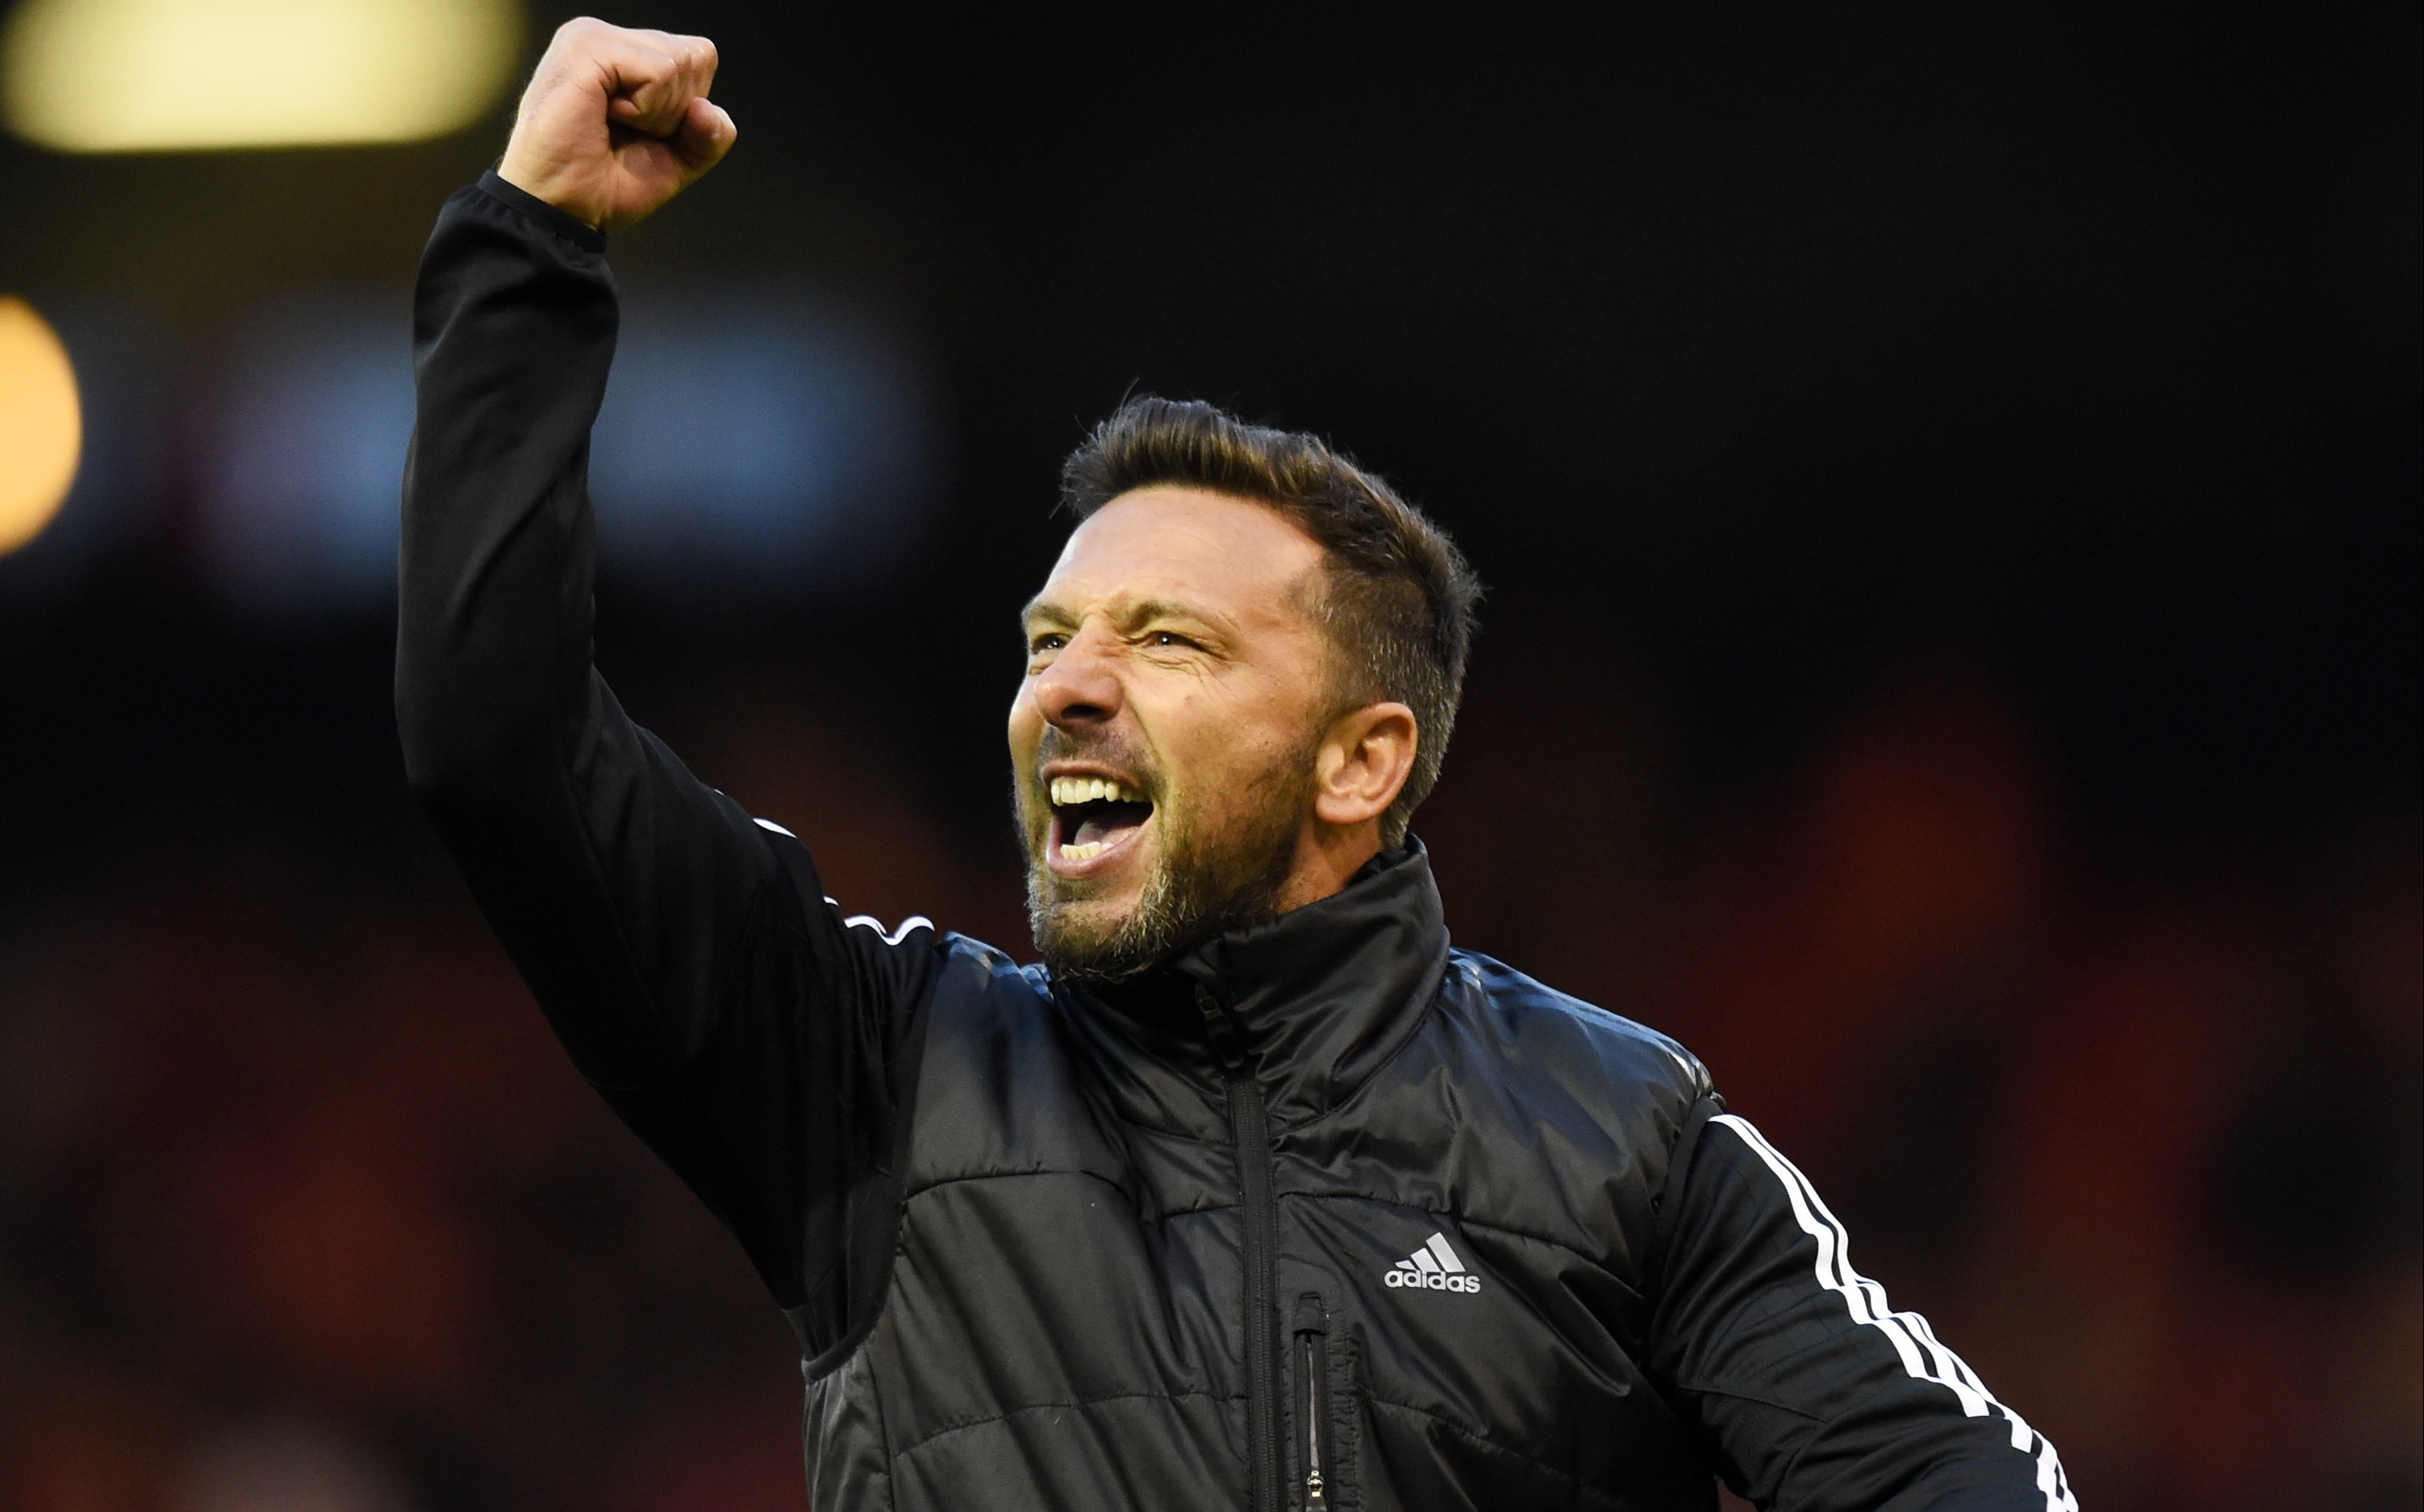 Derek McInnes wants his players to concentrate on winning the ultimate prize.